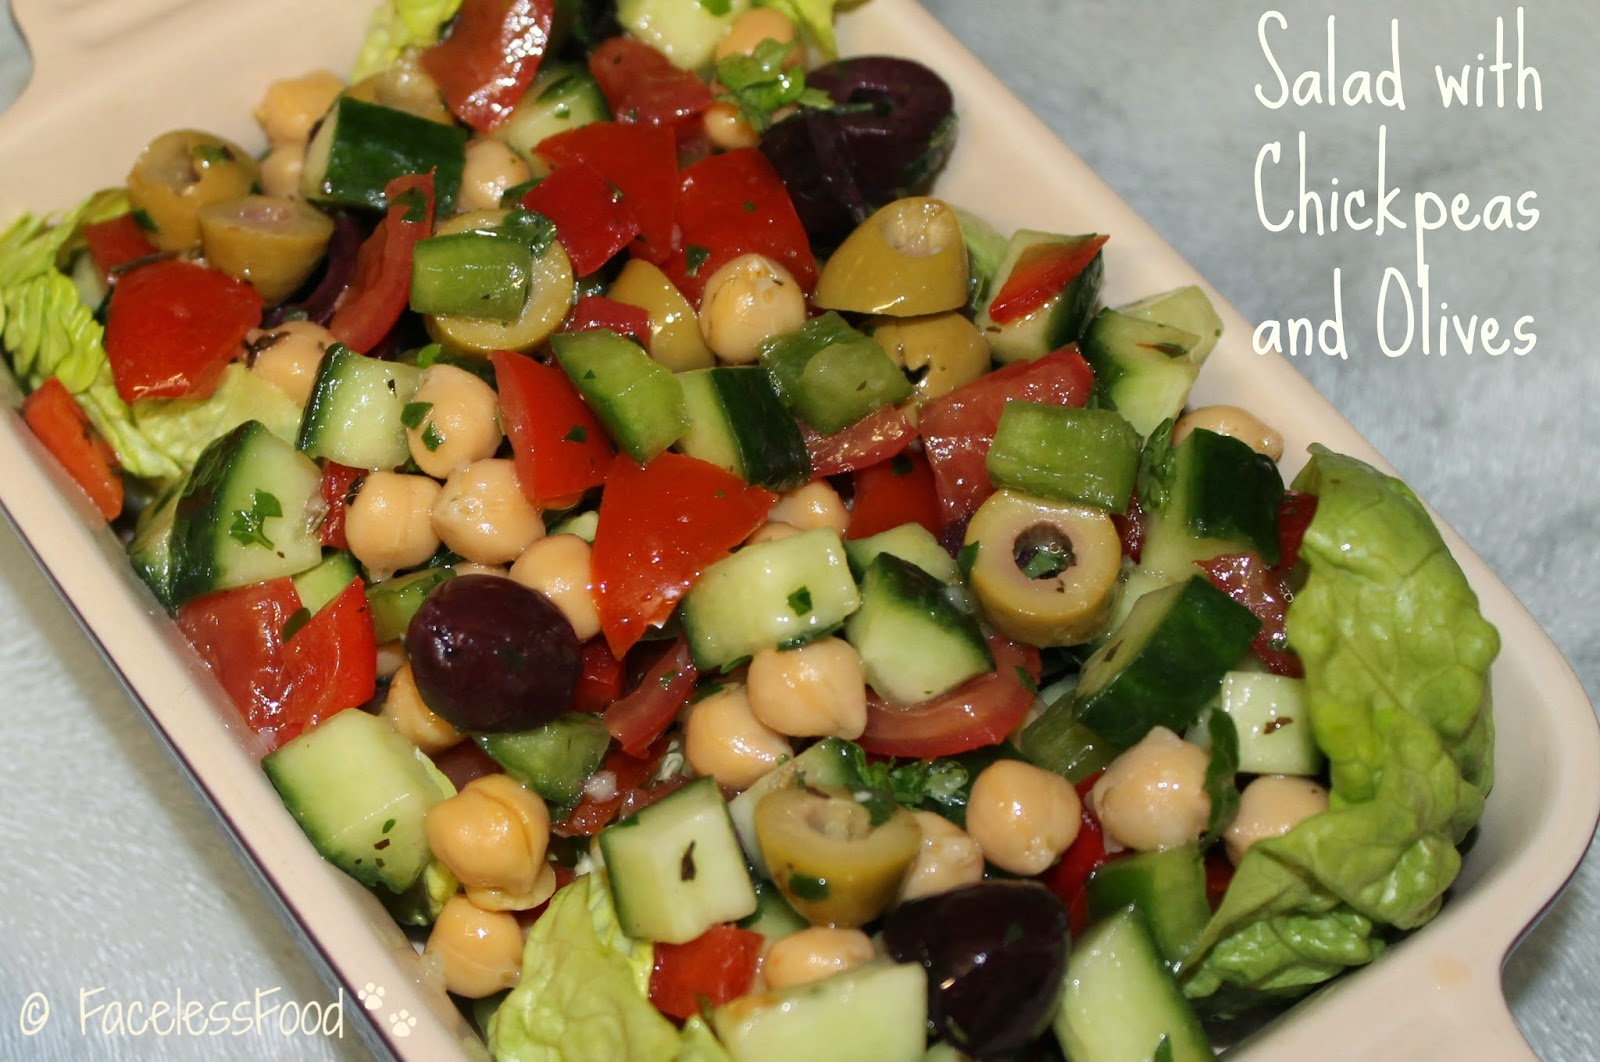 Salad with Chickpeas and Olives